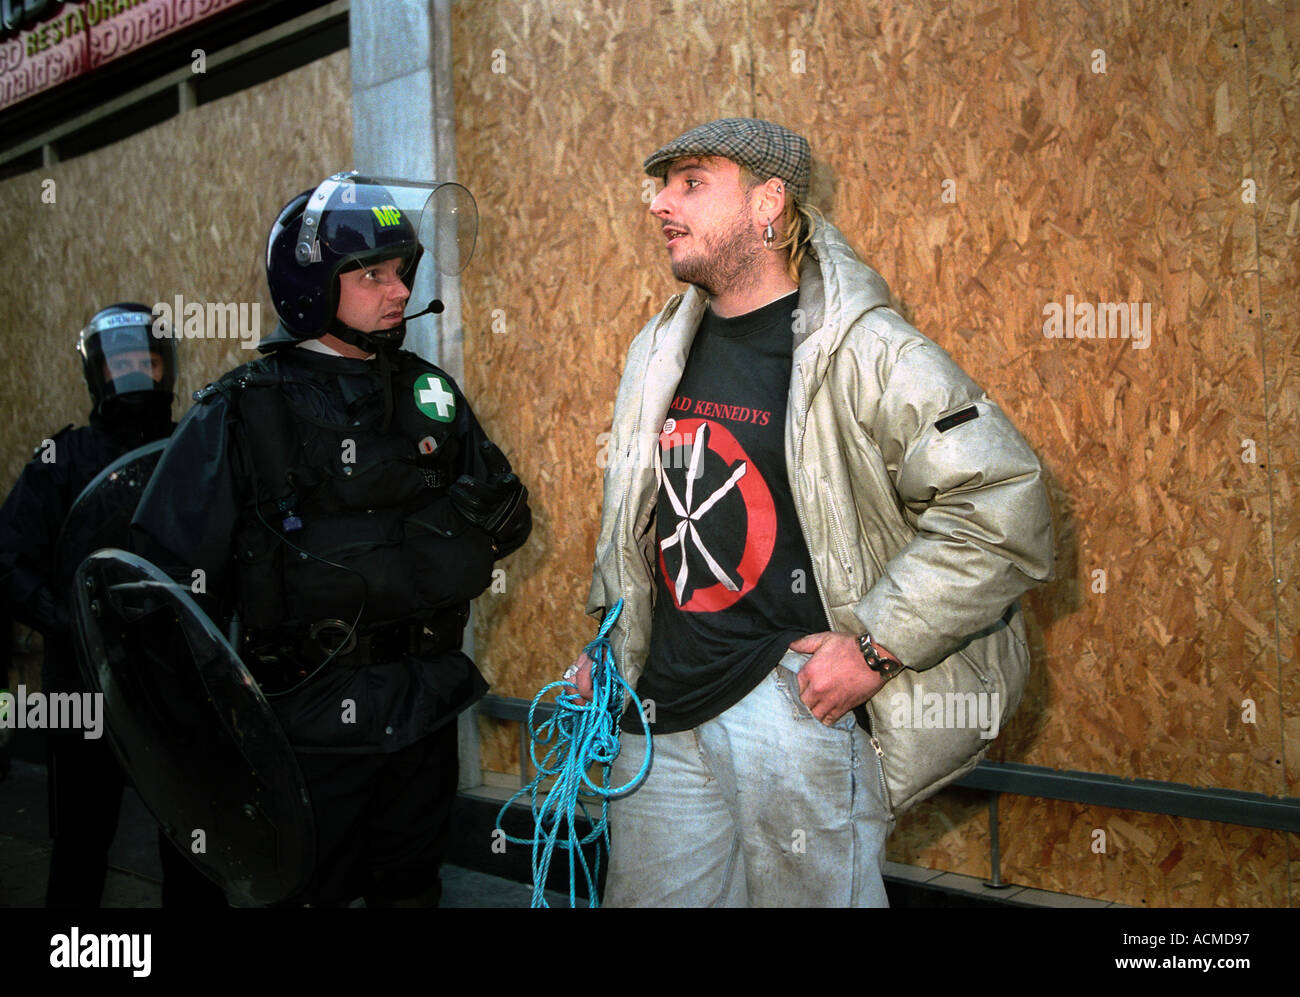 police and demonstrator confronting each other at mayday demonstration in central London - Stock Image